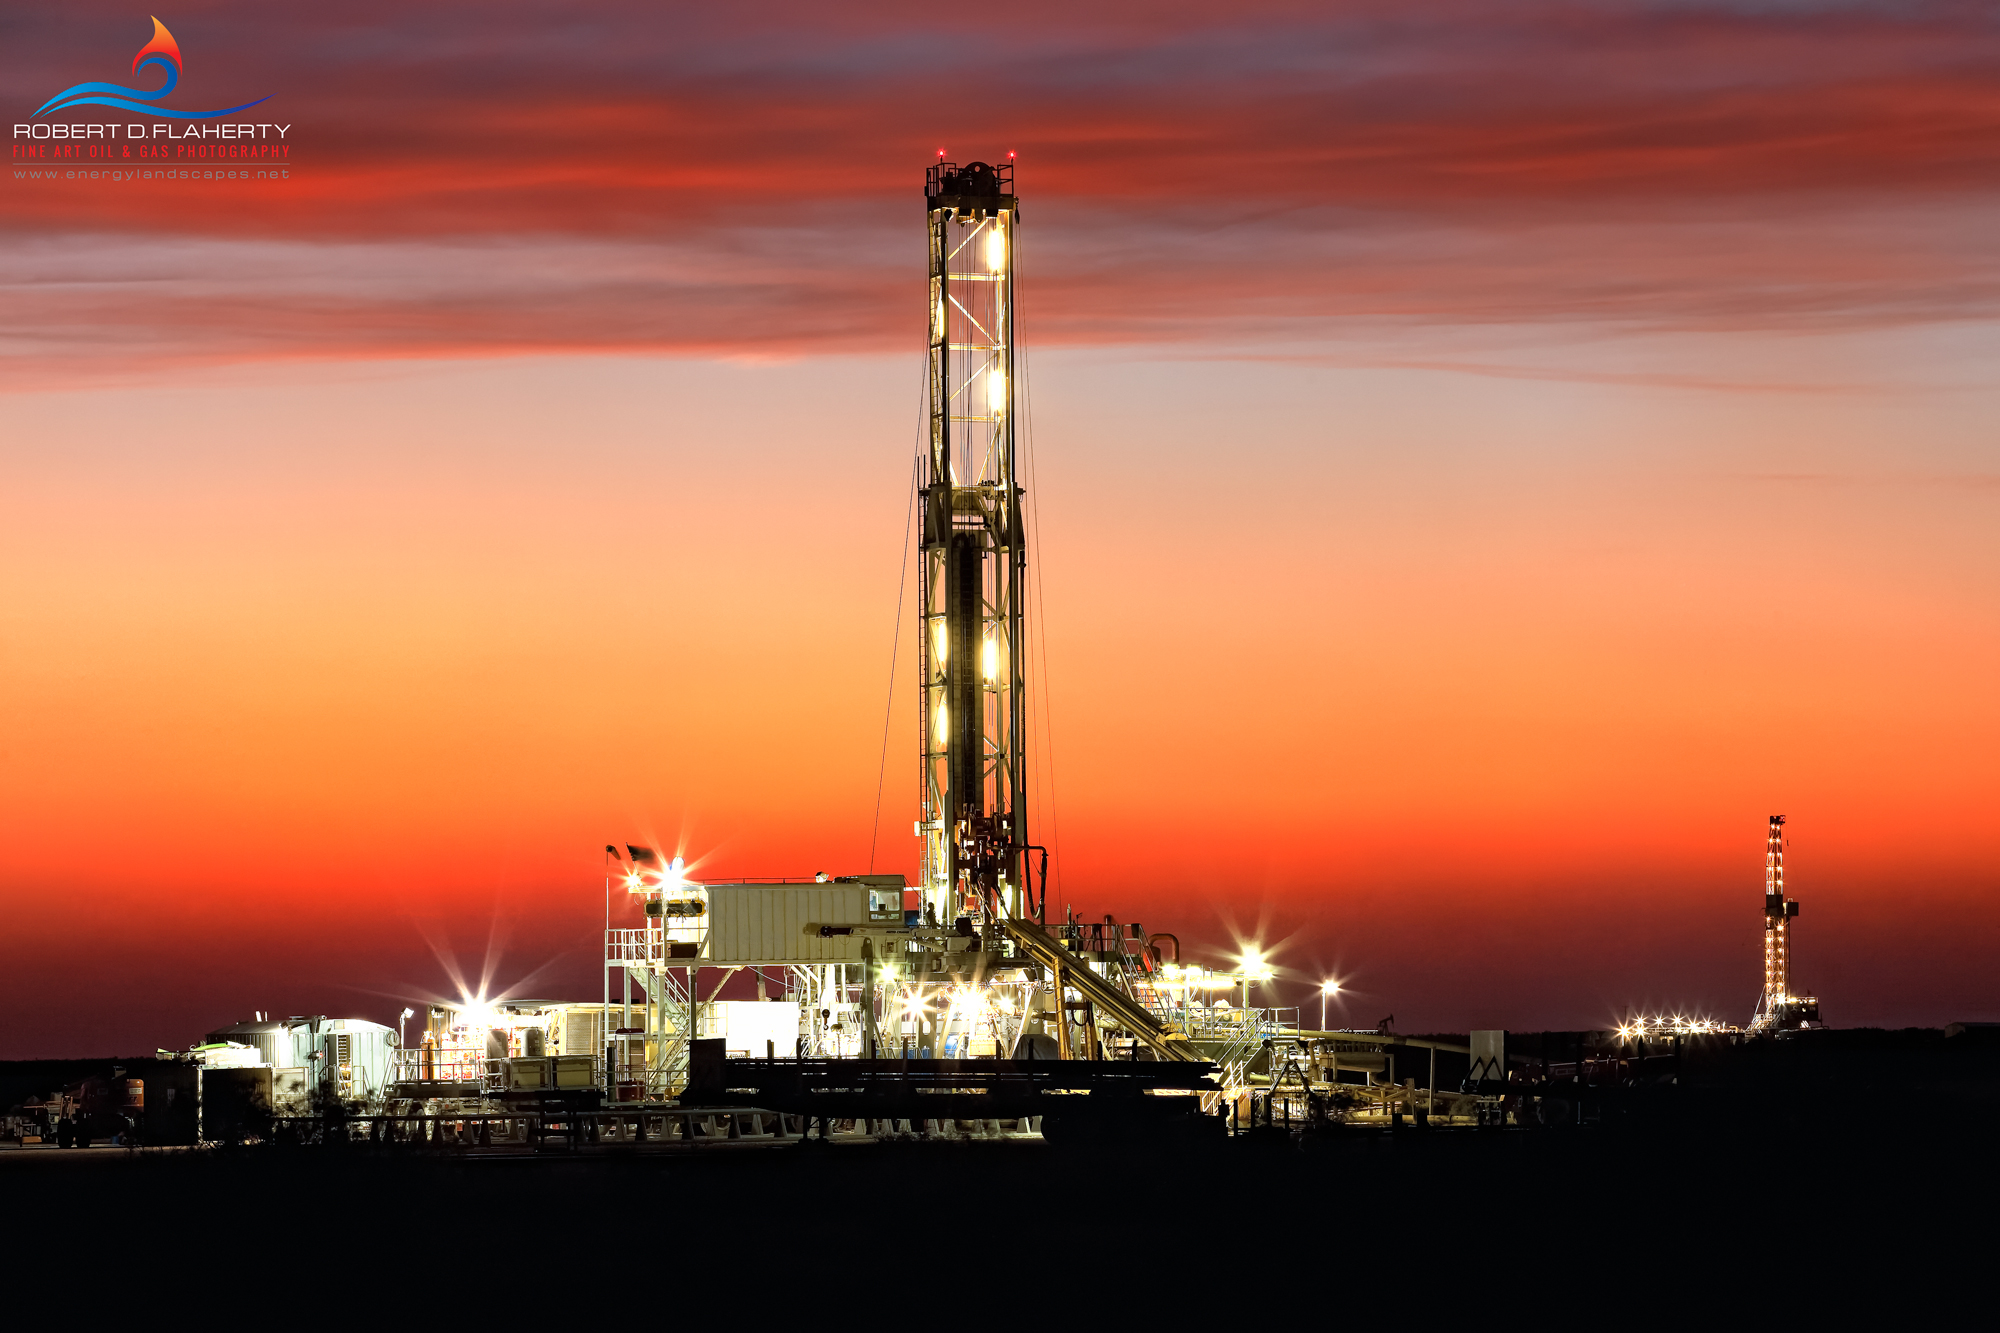 Drilling rig, Midland County Texas, evening tour, evening tower, oil drilling, sunset, oil and gas photography, Permian Basin, H&P Drilling, photo